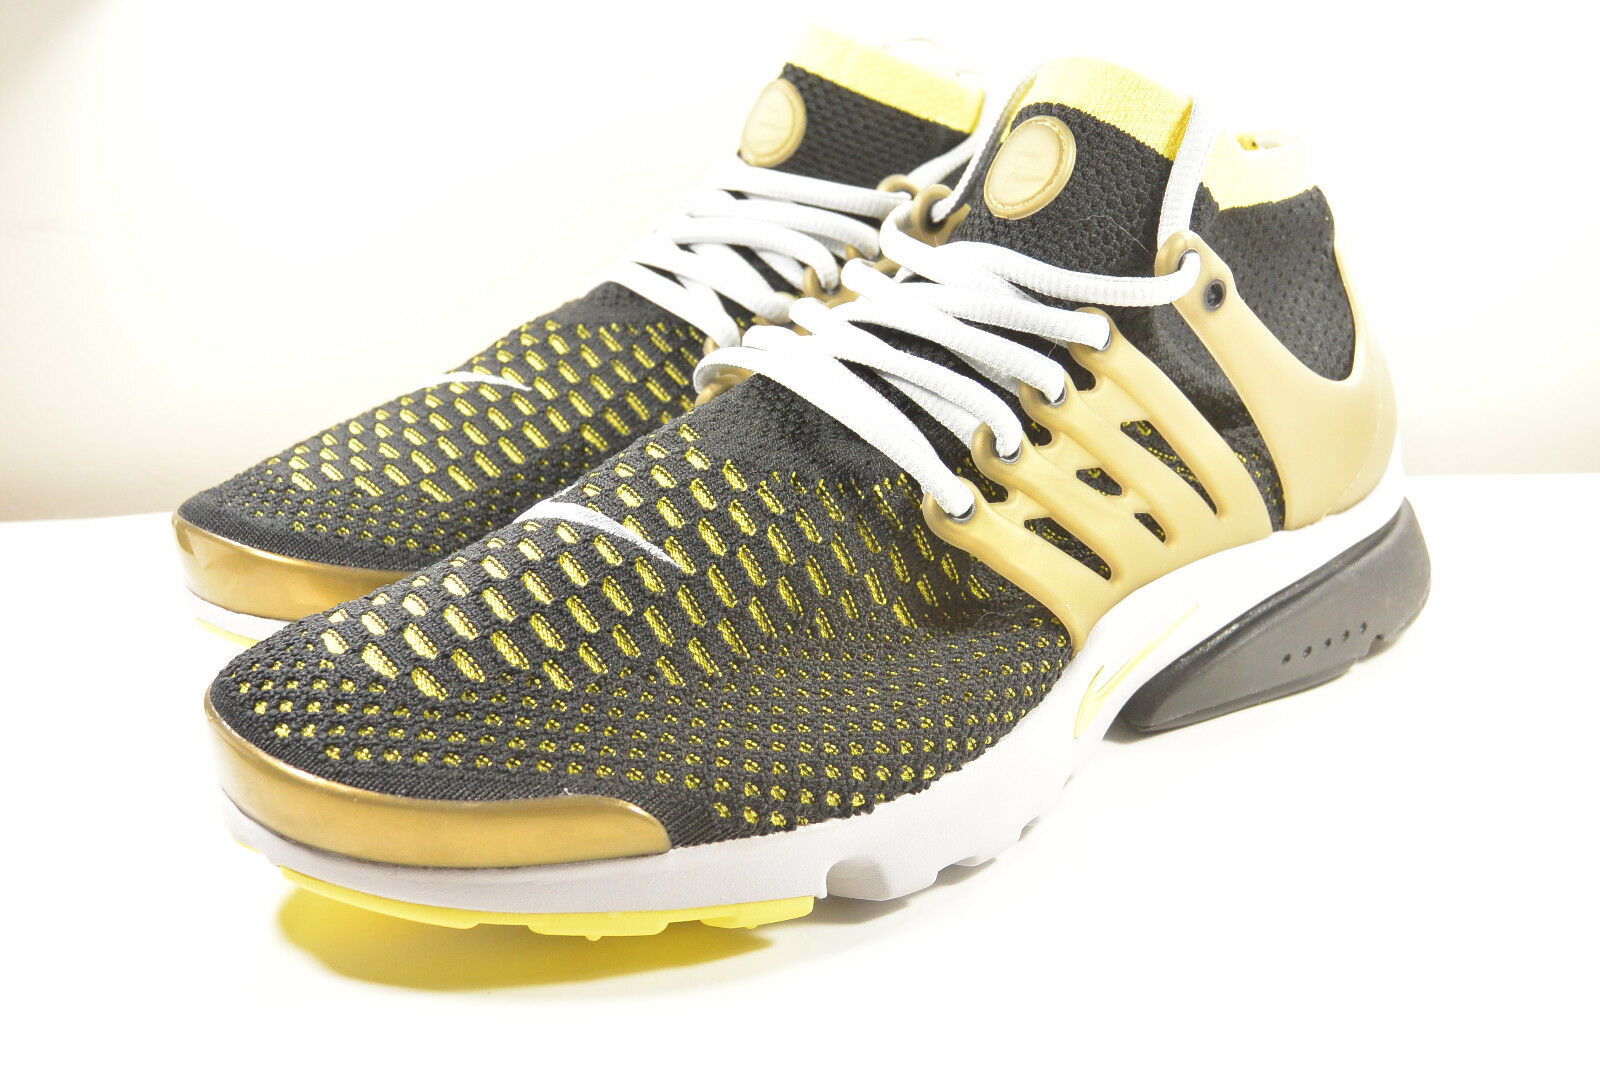 DS NIKE 2017 AIR PRESTO FLYKNIT ULTRA BLACK gold 8, 10, 11 RETRO OLYMPIC SAFARI